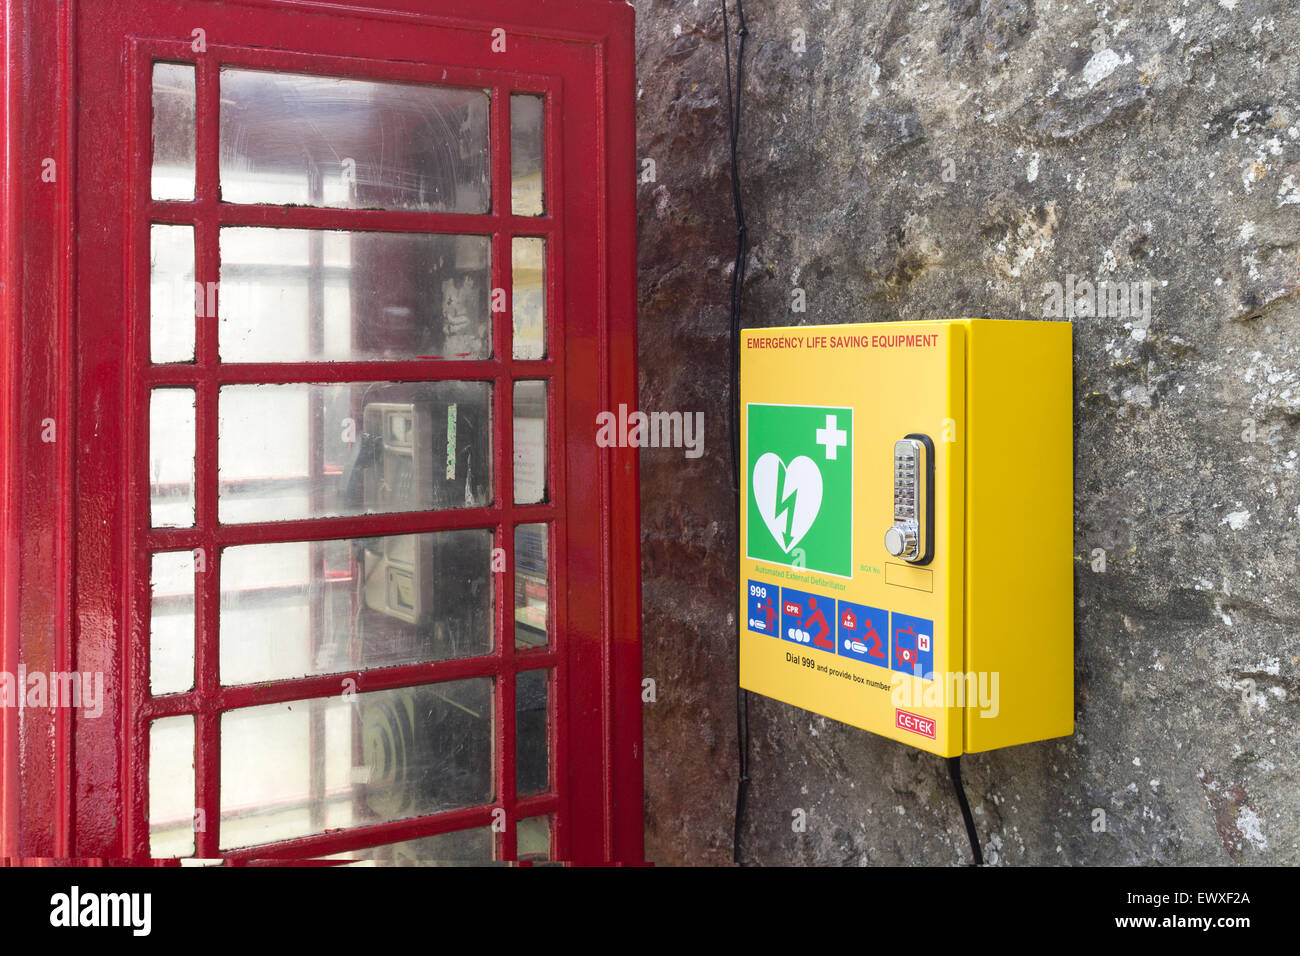 Emergency Public Access External Defibrillator Located Next to a Phone Box in the Village of Starbottom, Wharfedale, - Stock Image